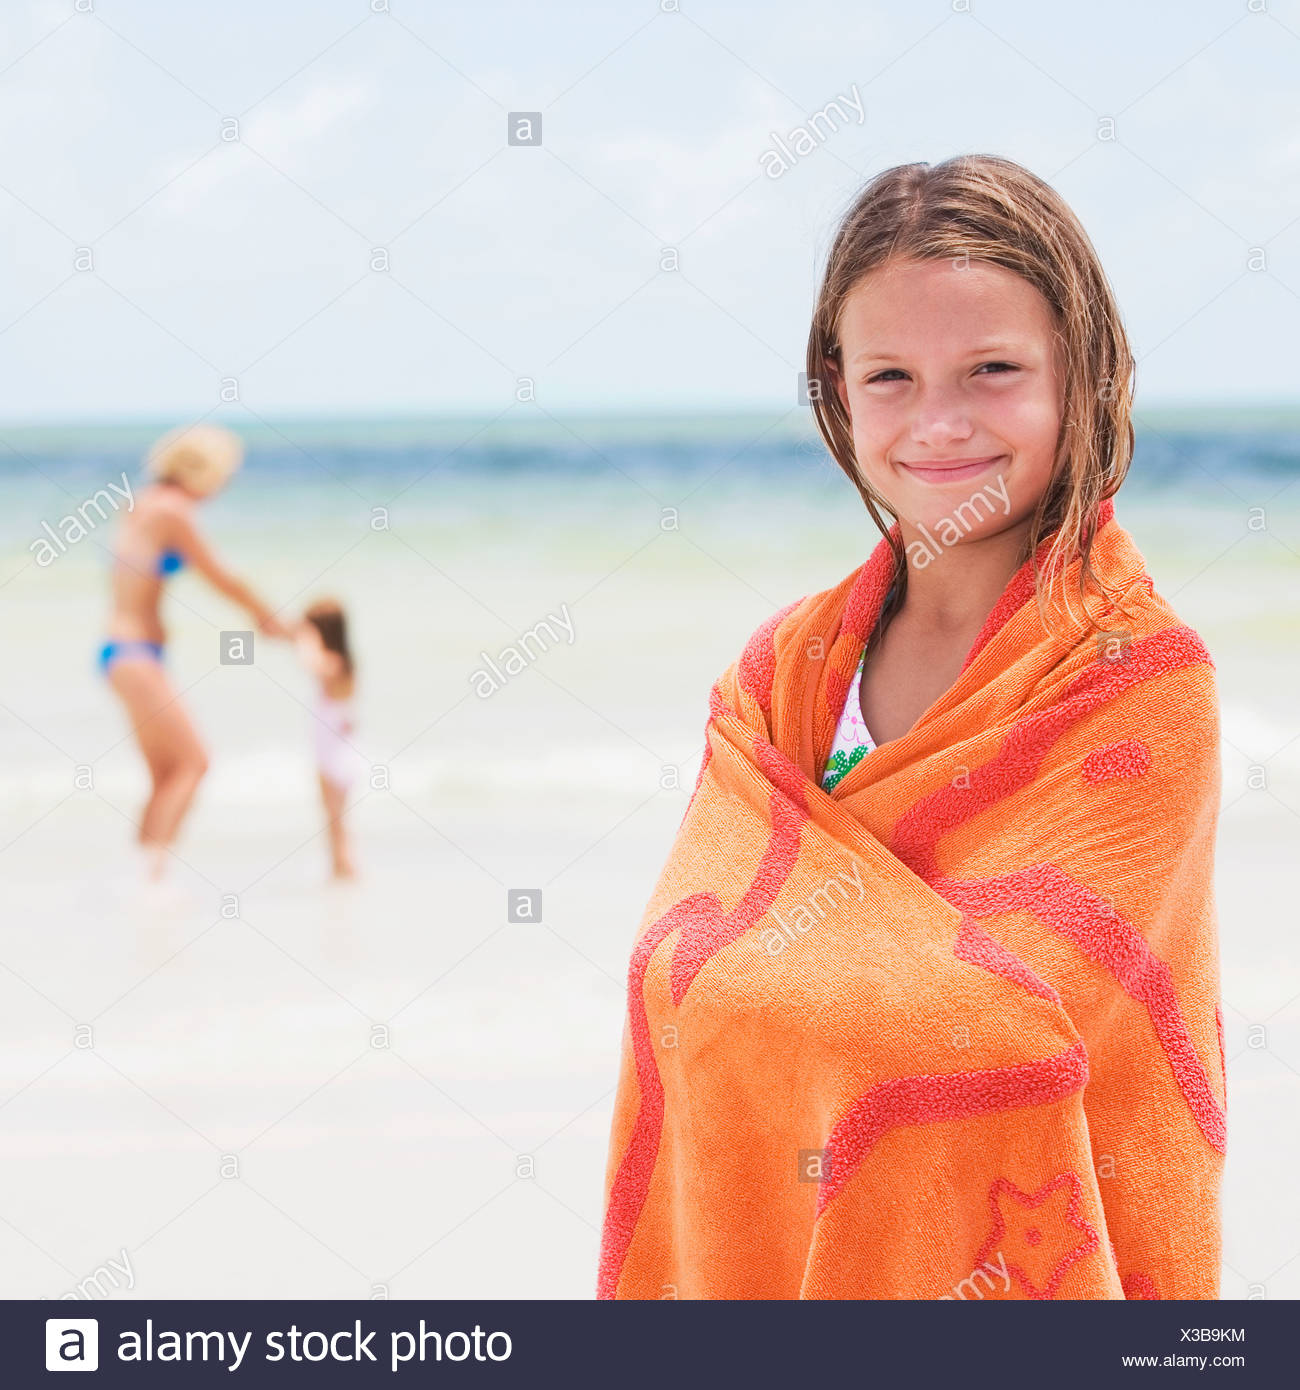 Girl wrapped in towel on beach Stock Photo